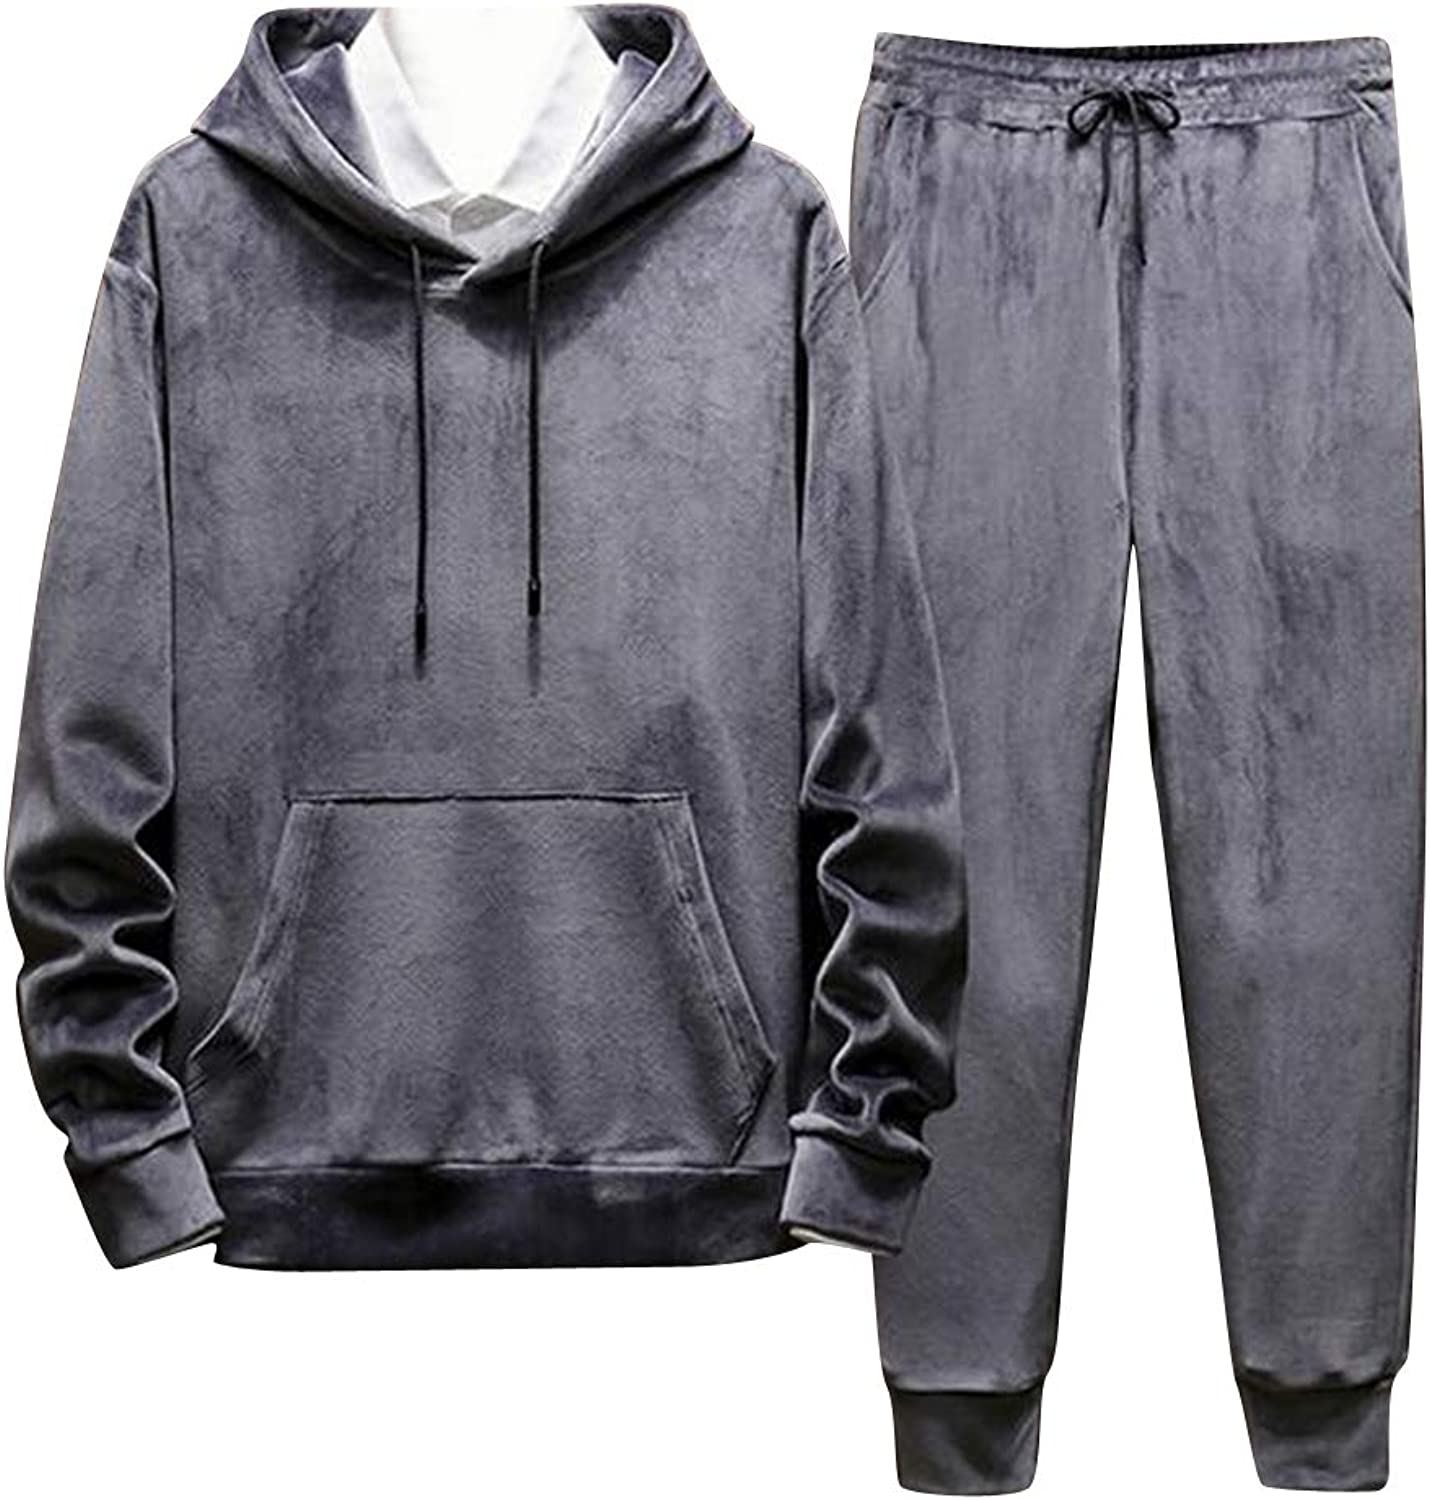 Fensajomon Mens Hoodies Sweatshirt+Pants Casual Velvet Sweatsuits Tracksuits Outfits